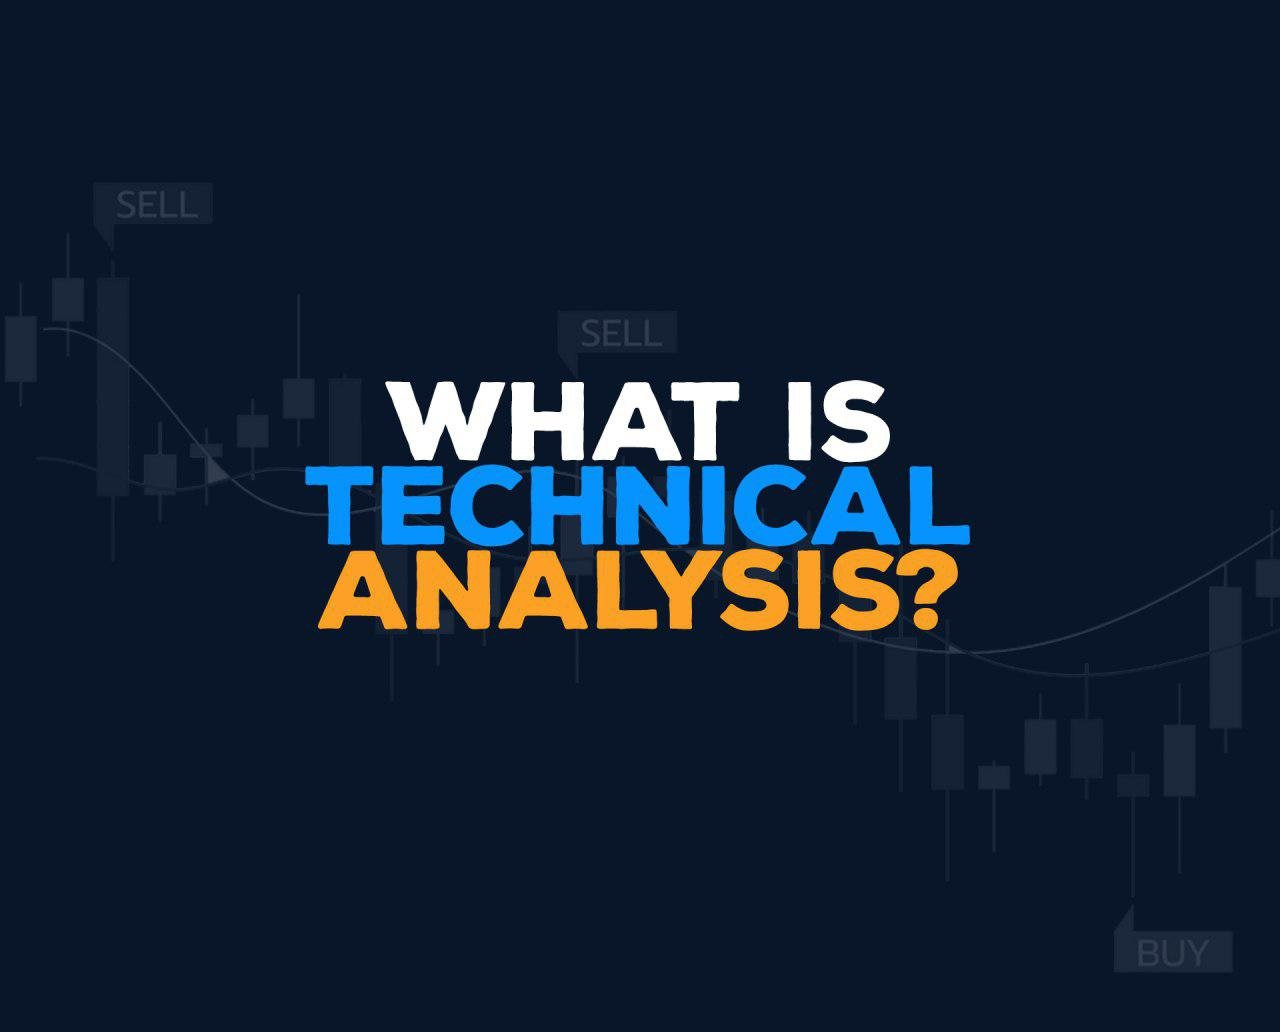 WHAT IS TECHNICAL ANALYSIS